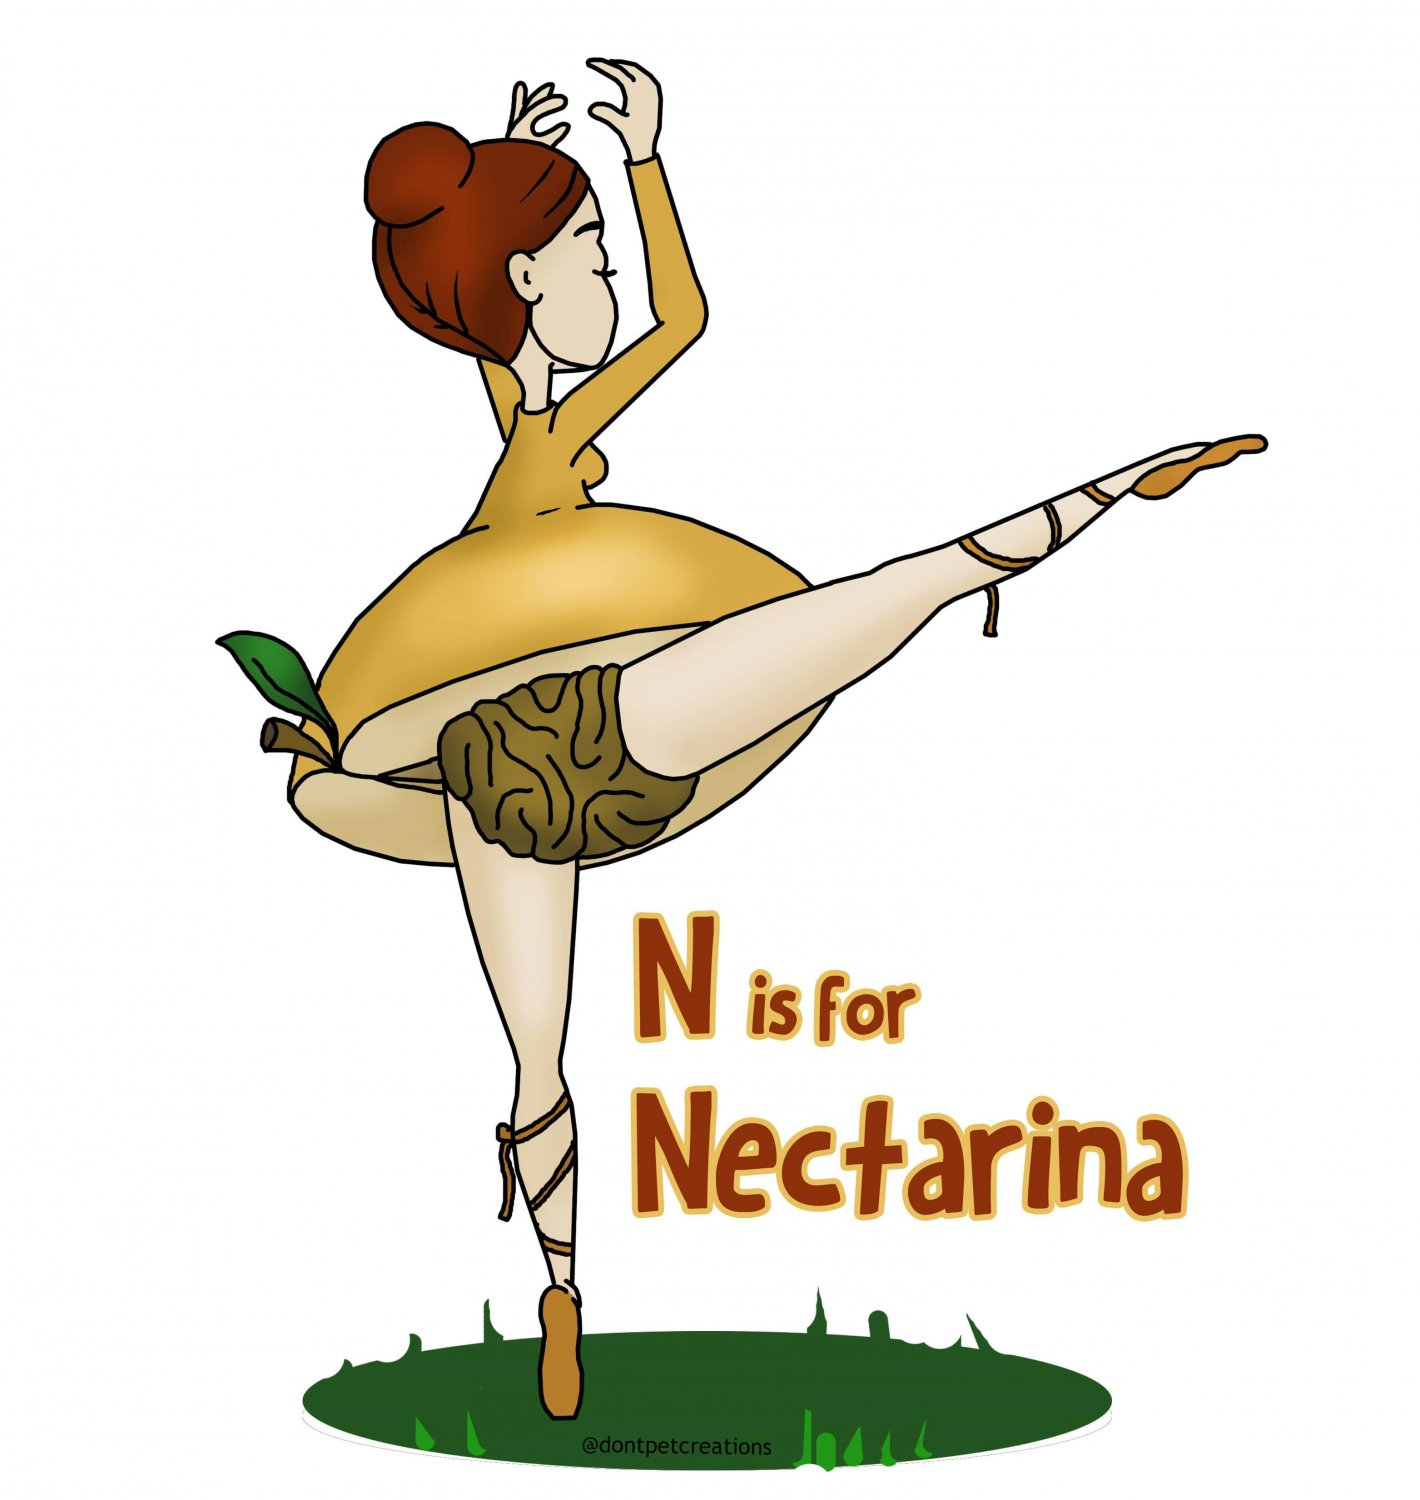 "N is for Nectarina STICKER 3""x 2"" Peachy Fruity Ballerina,  Glossy"